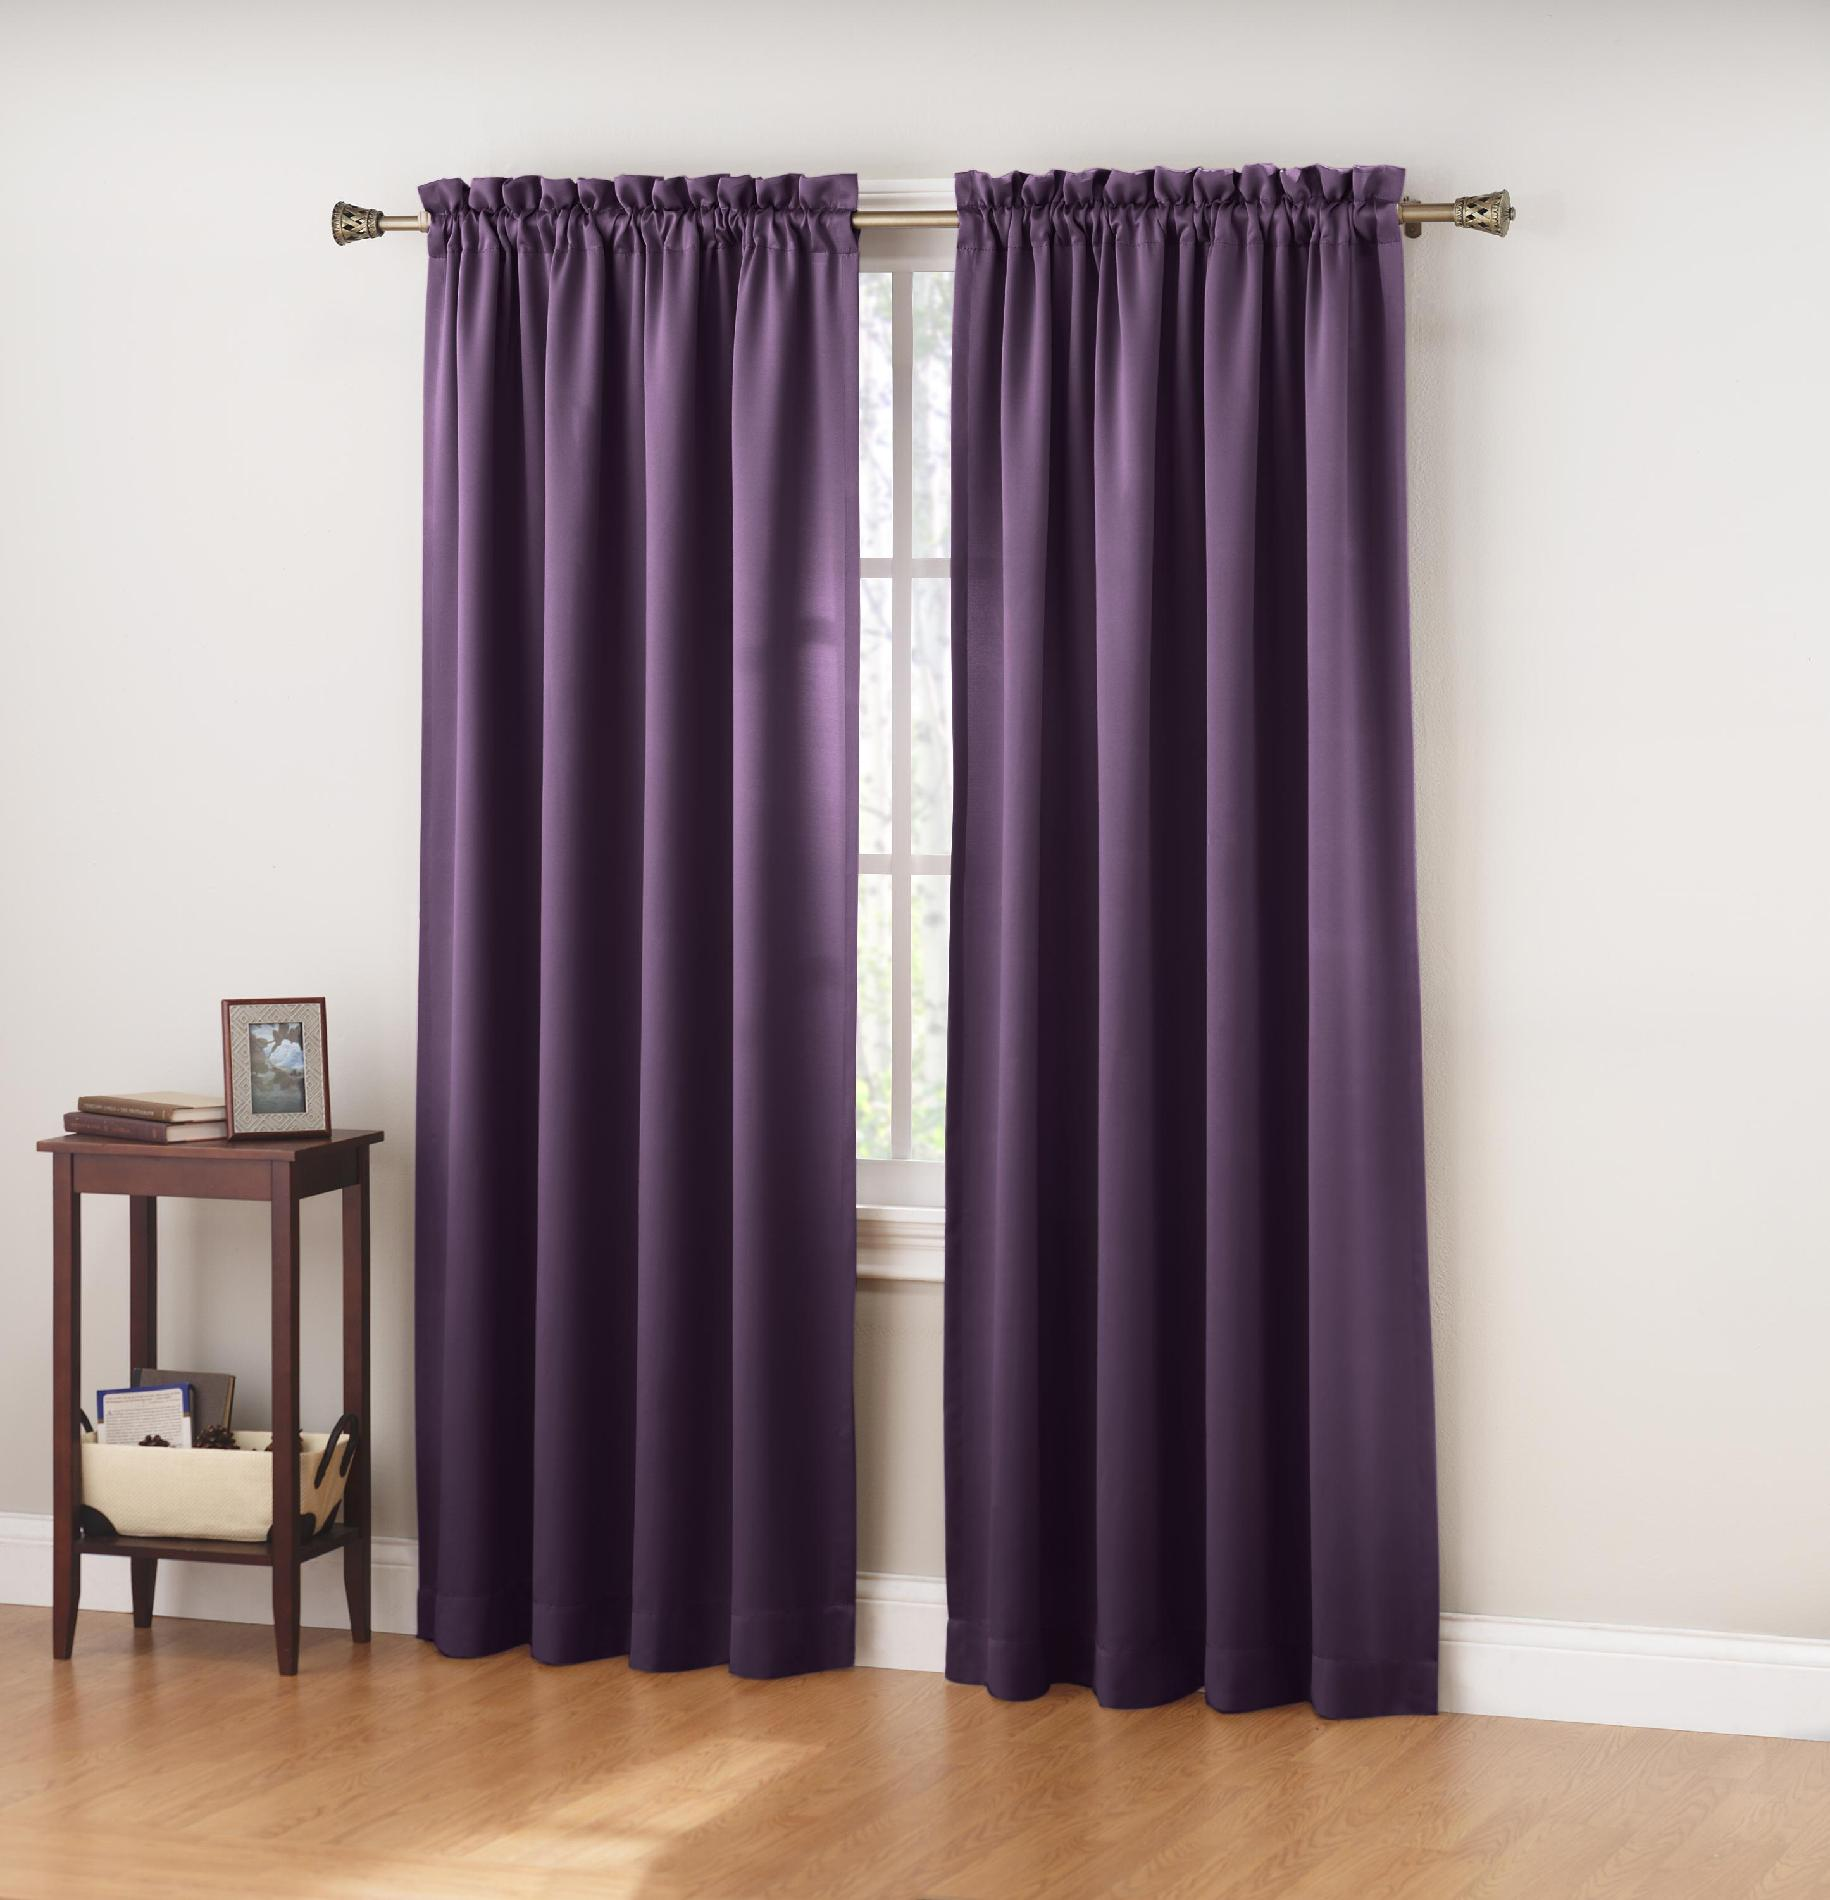 Amazing Colormate Jillian Room Darkening Window Curtain Panel window curtain panels